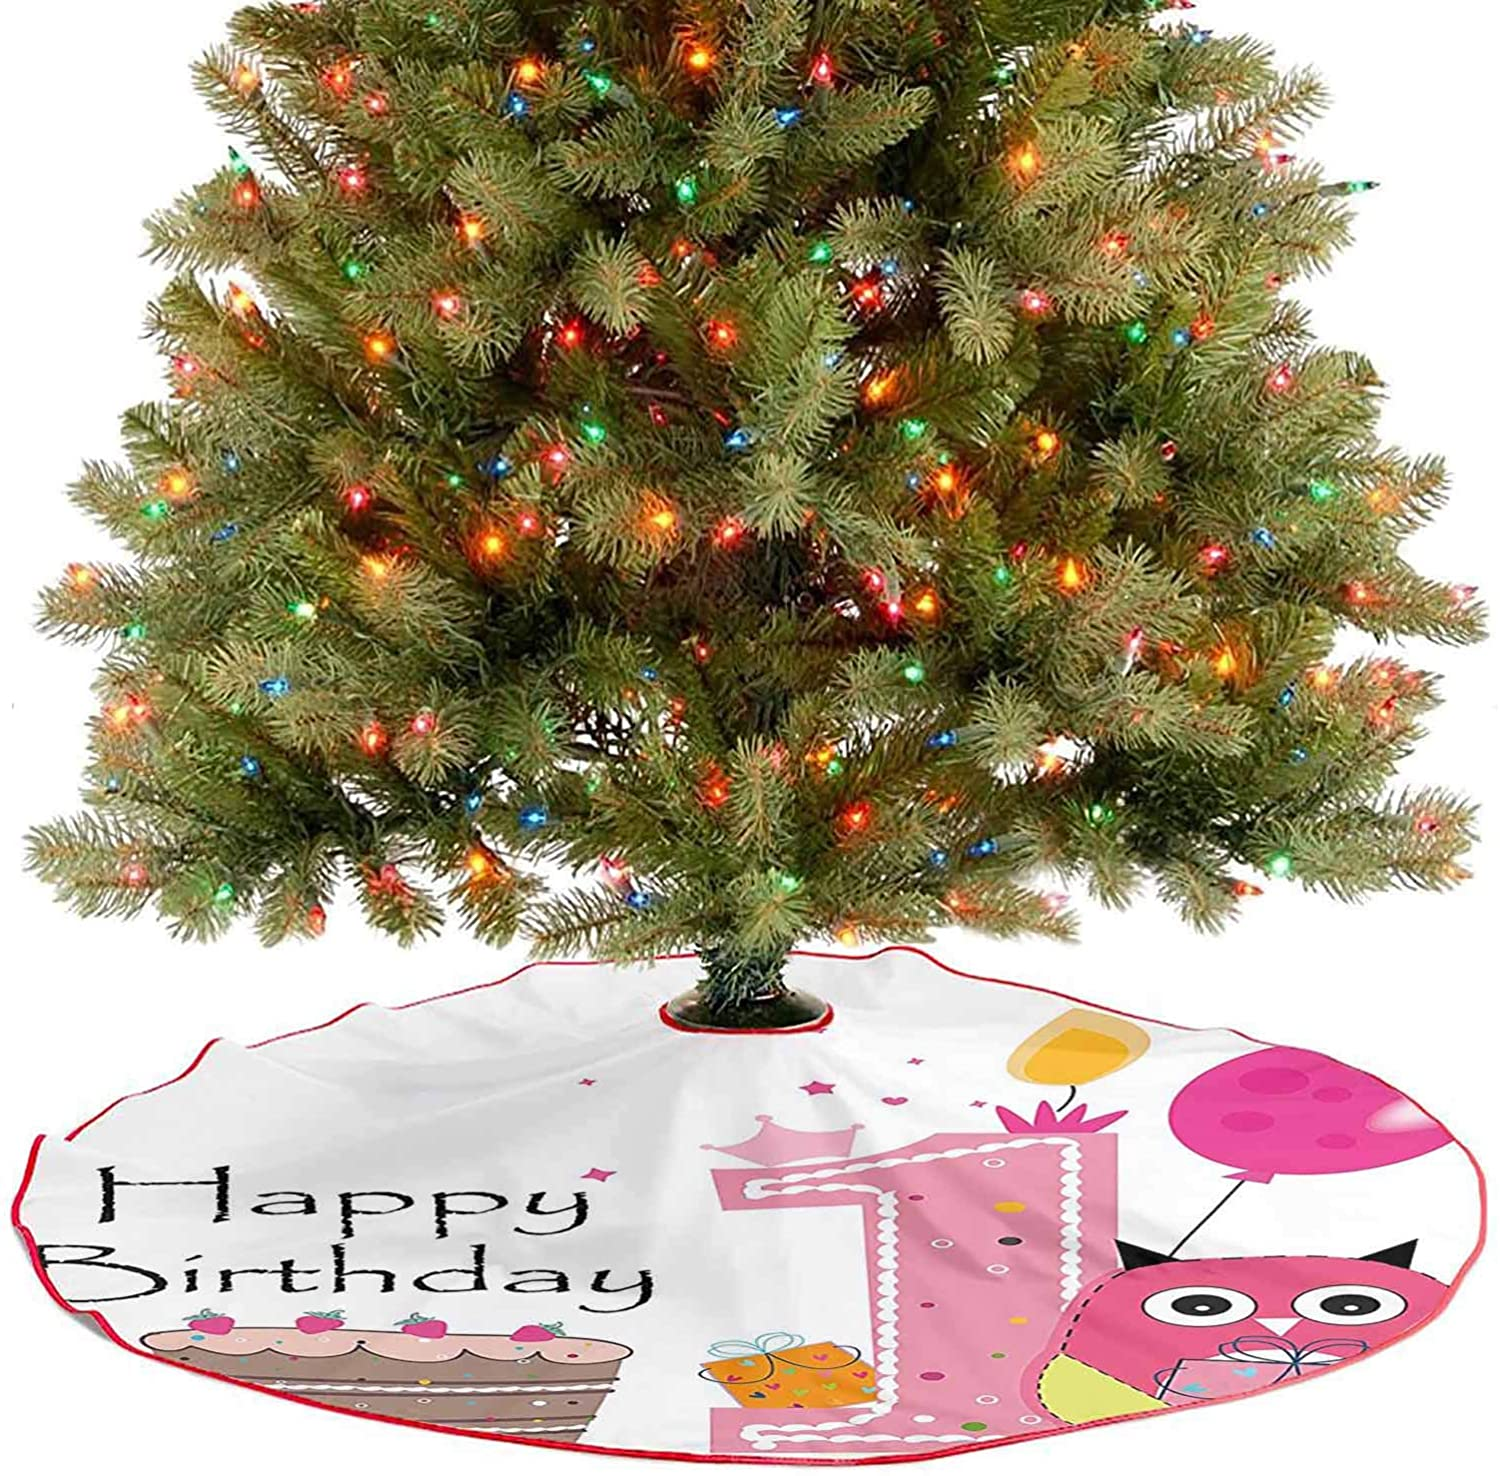 Adorise Tree Skirts Mat First Birthday Cake Candle Sketchy Cartoon Owl Image Brown Hot Pink and Christmas Decoration Perfect for Your Holiday Decor - 48 Inch